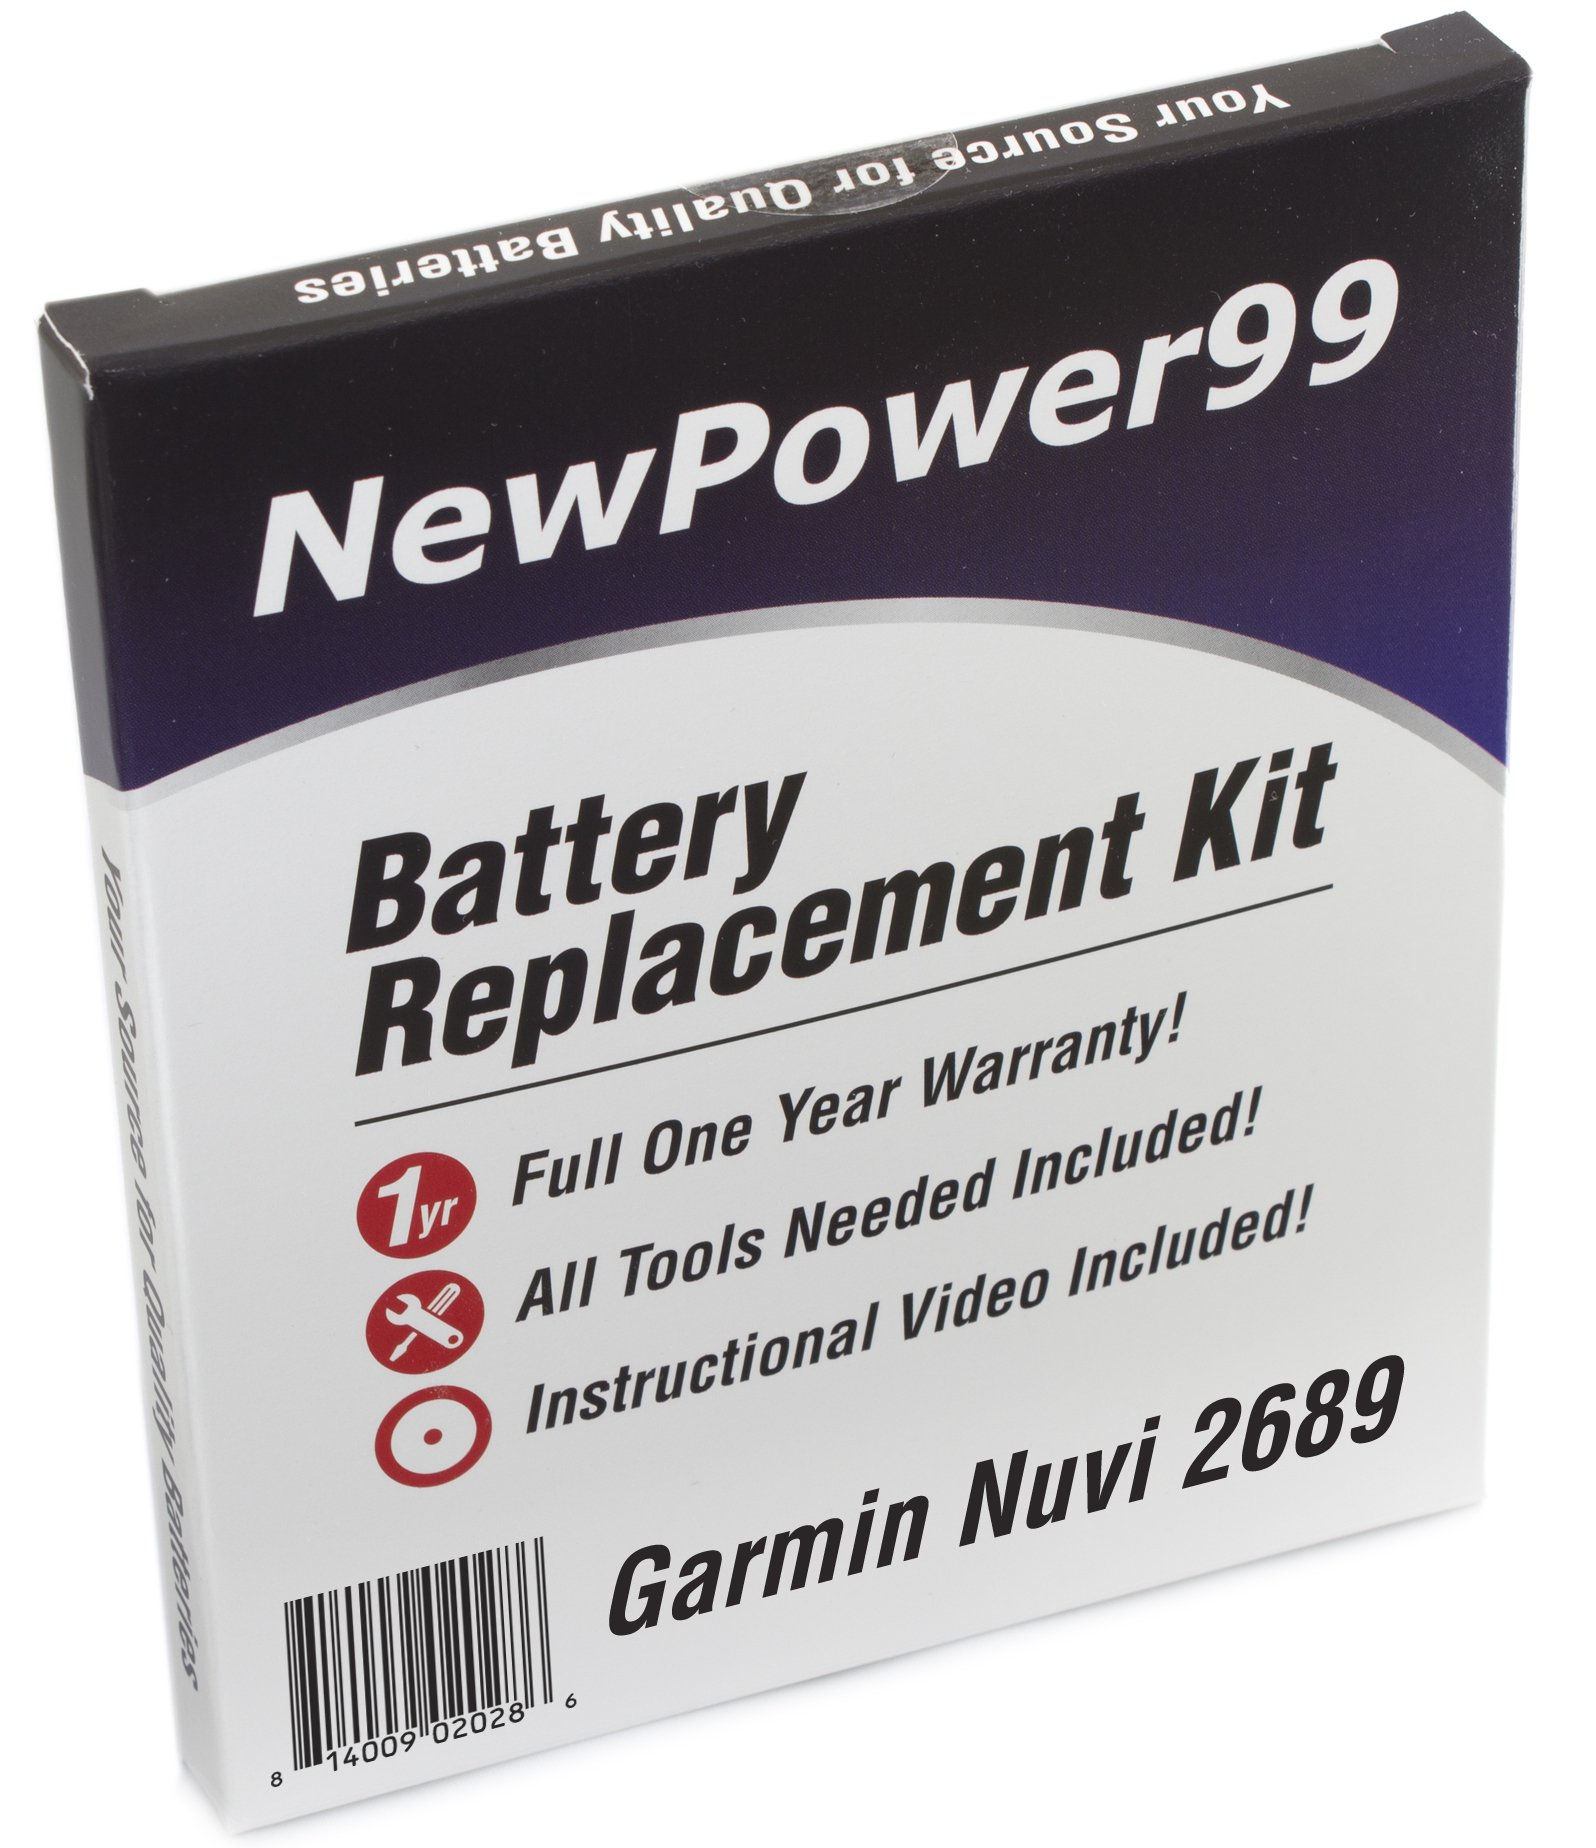 Battery Replacement Kit for Garmin Nuvi 2689 with Installation Video, Tools, and Extended Life Battery.